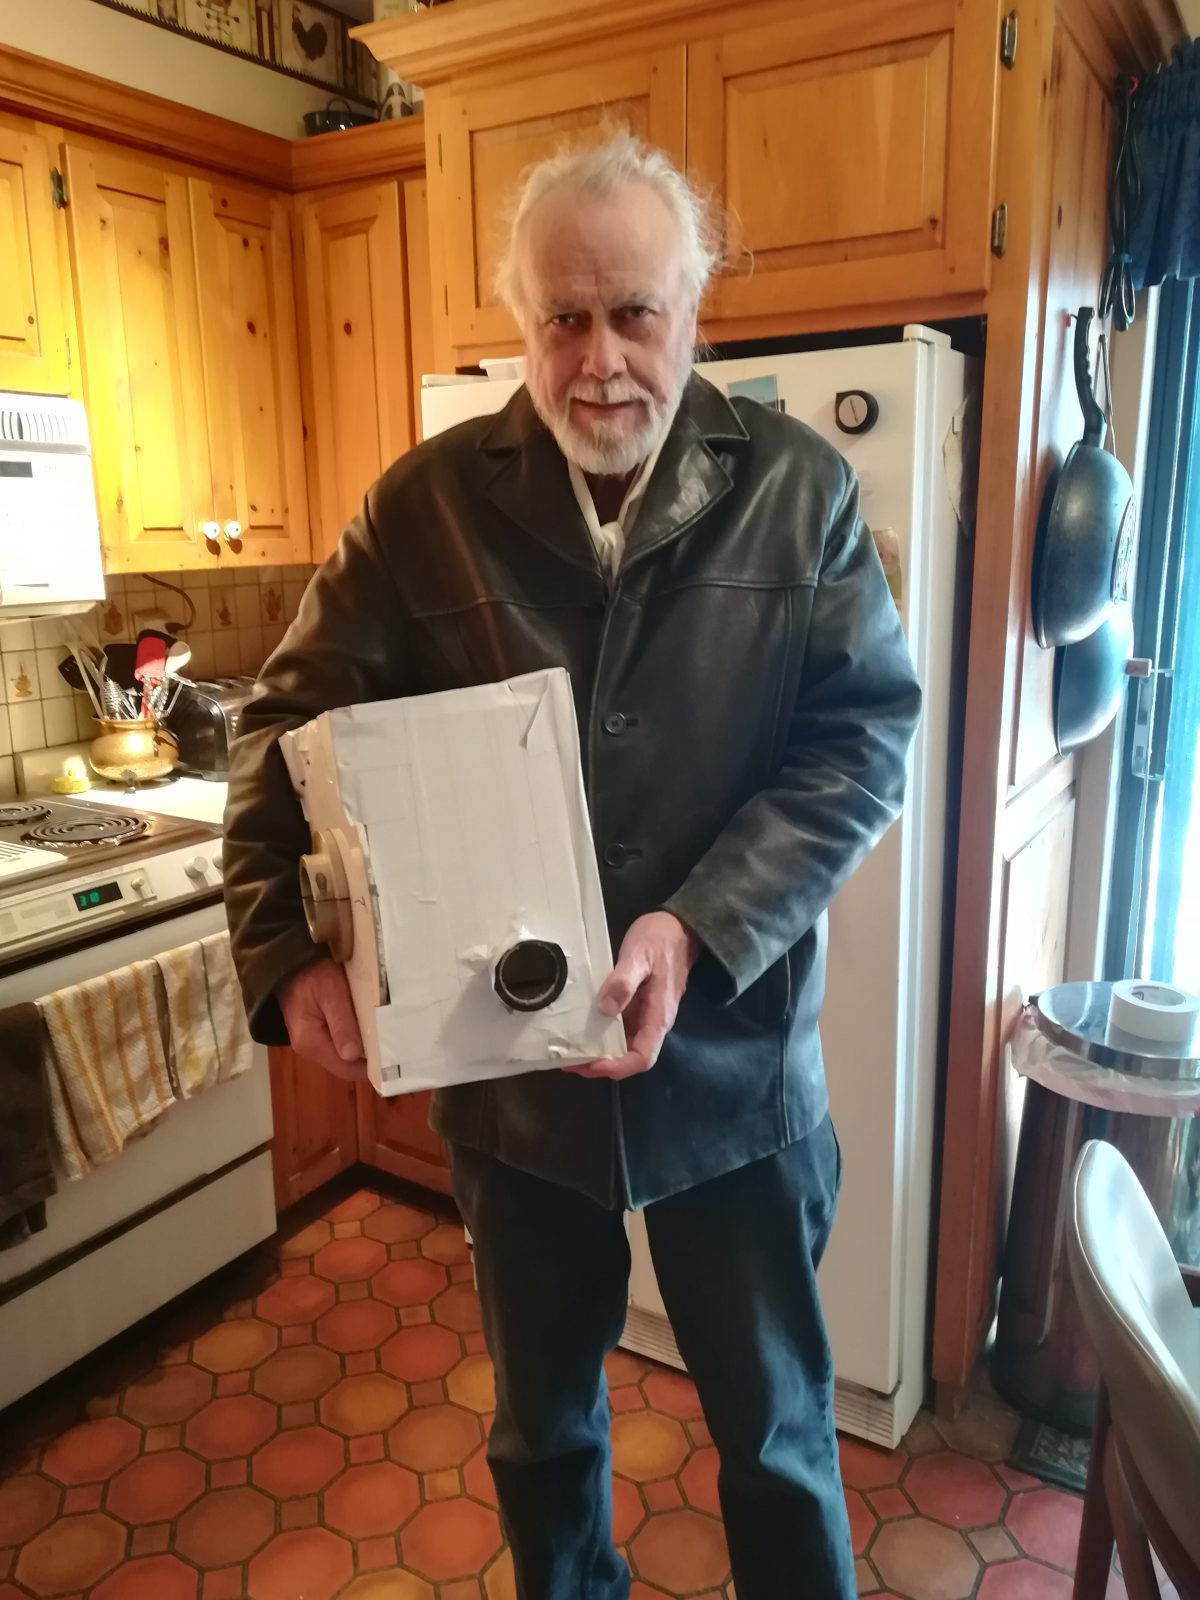 Professor McElroy holding the Spectrometer in his Toronto home.